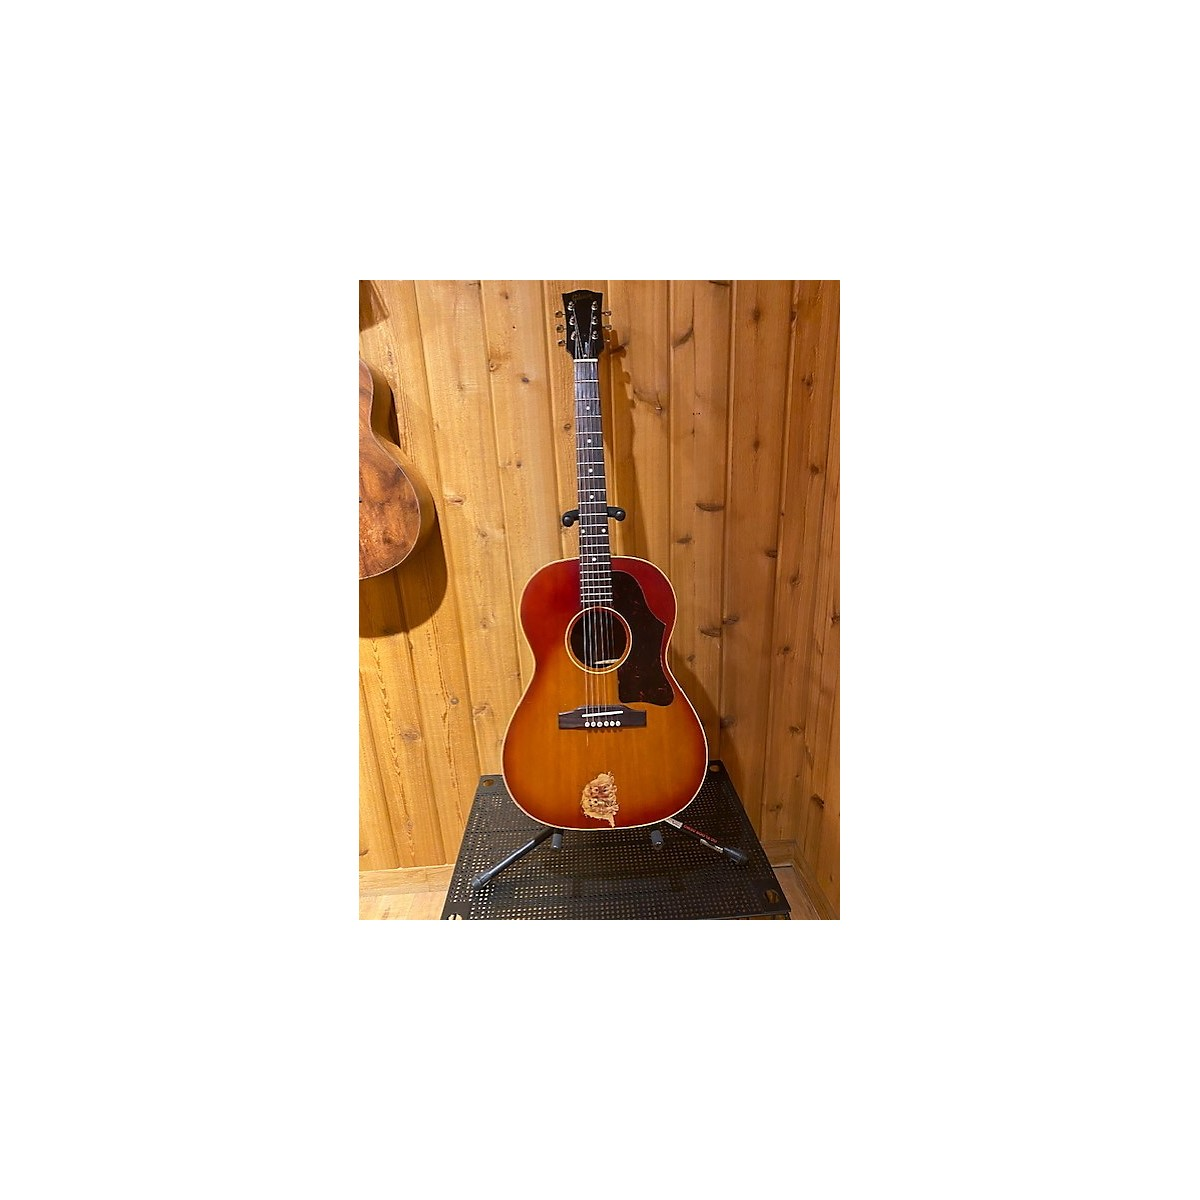 Gibson 1962 LG-2 Acoustic Guitar